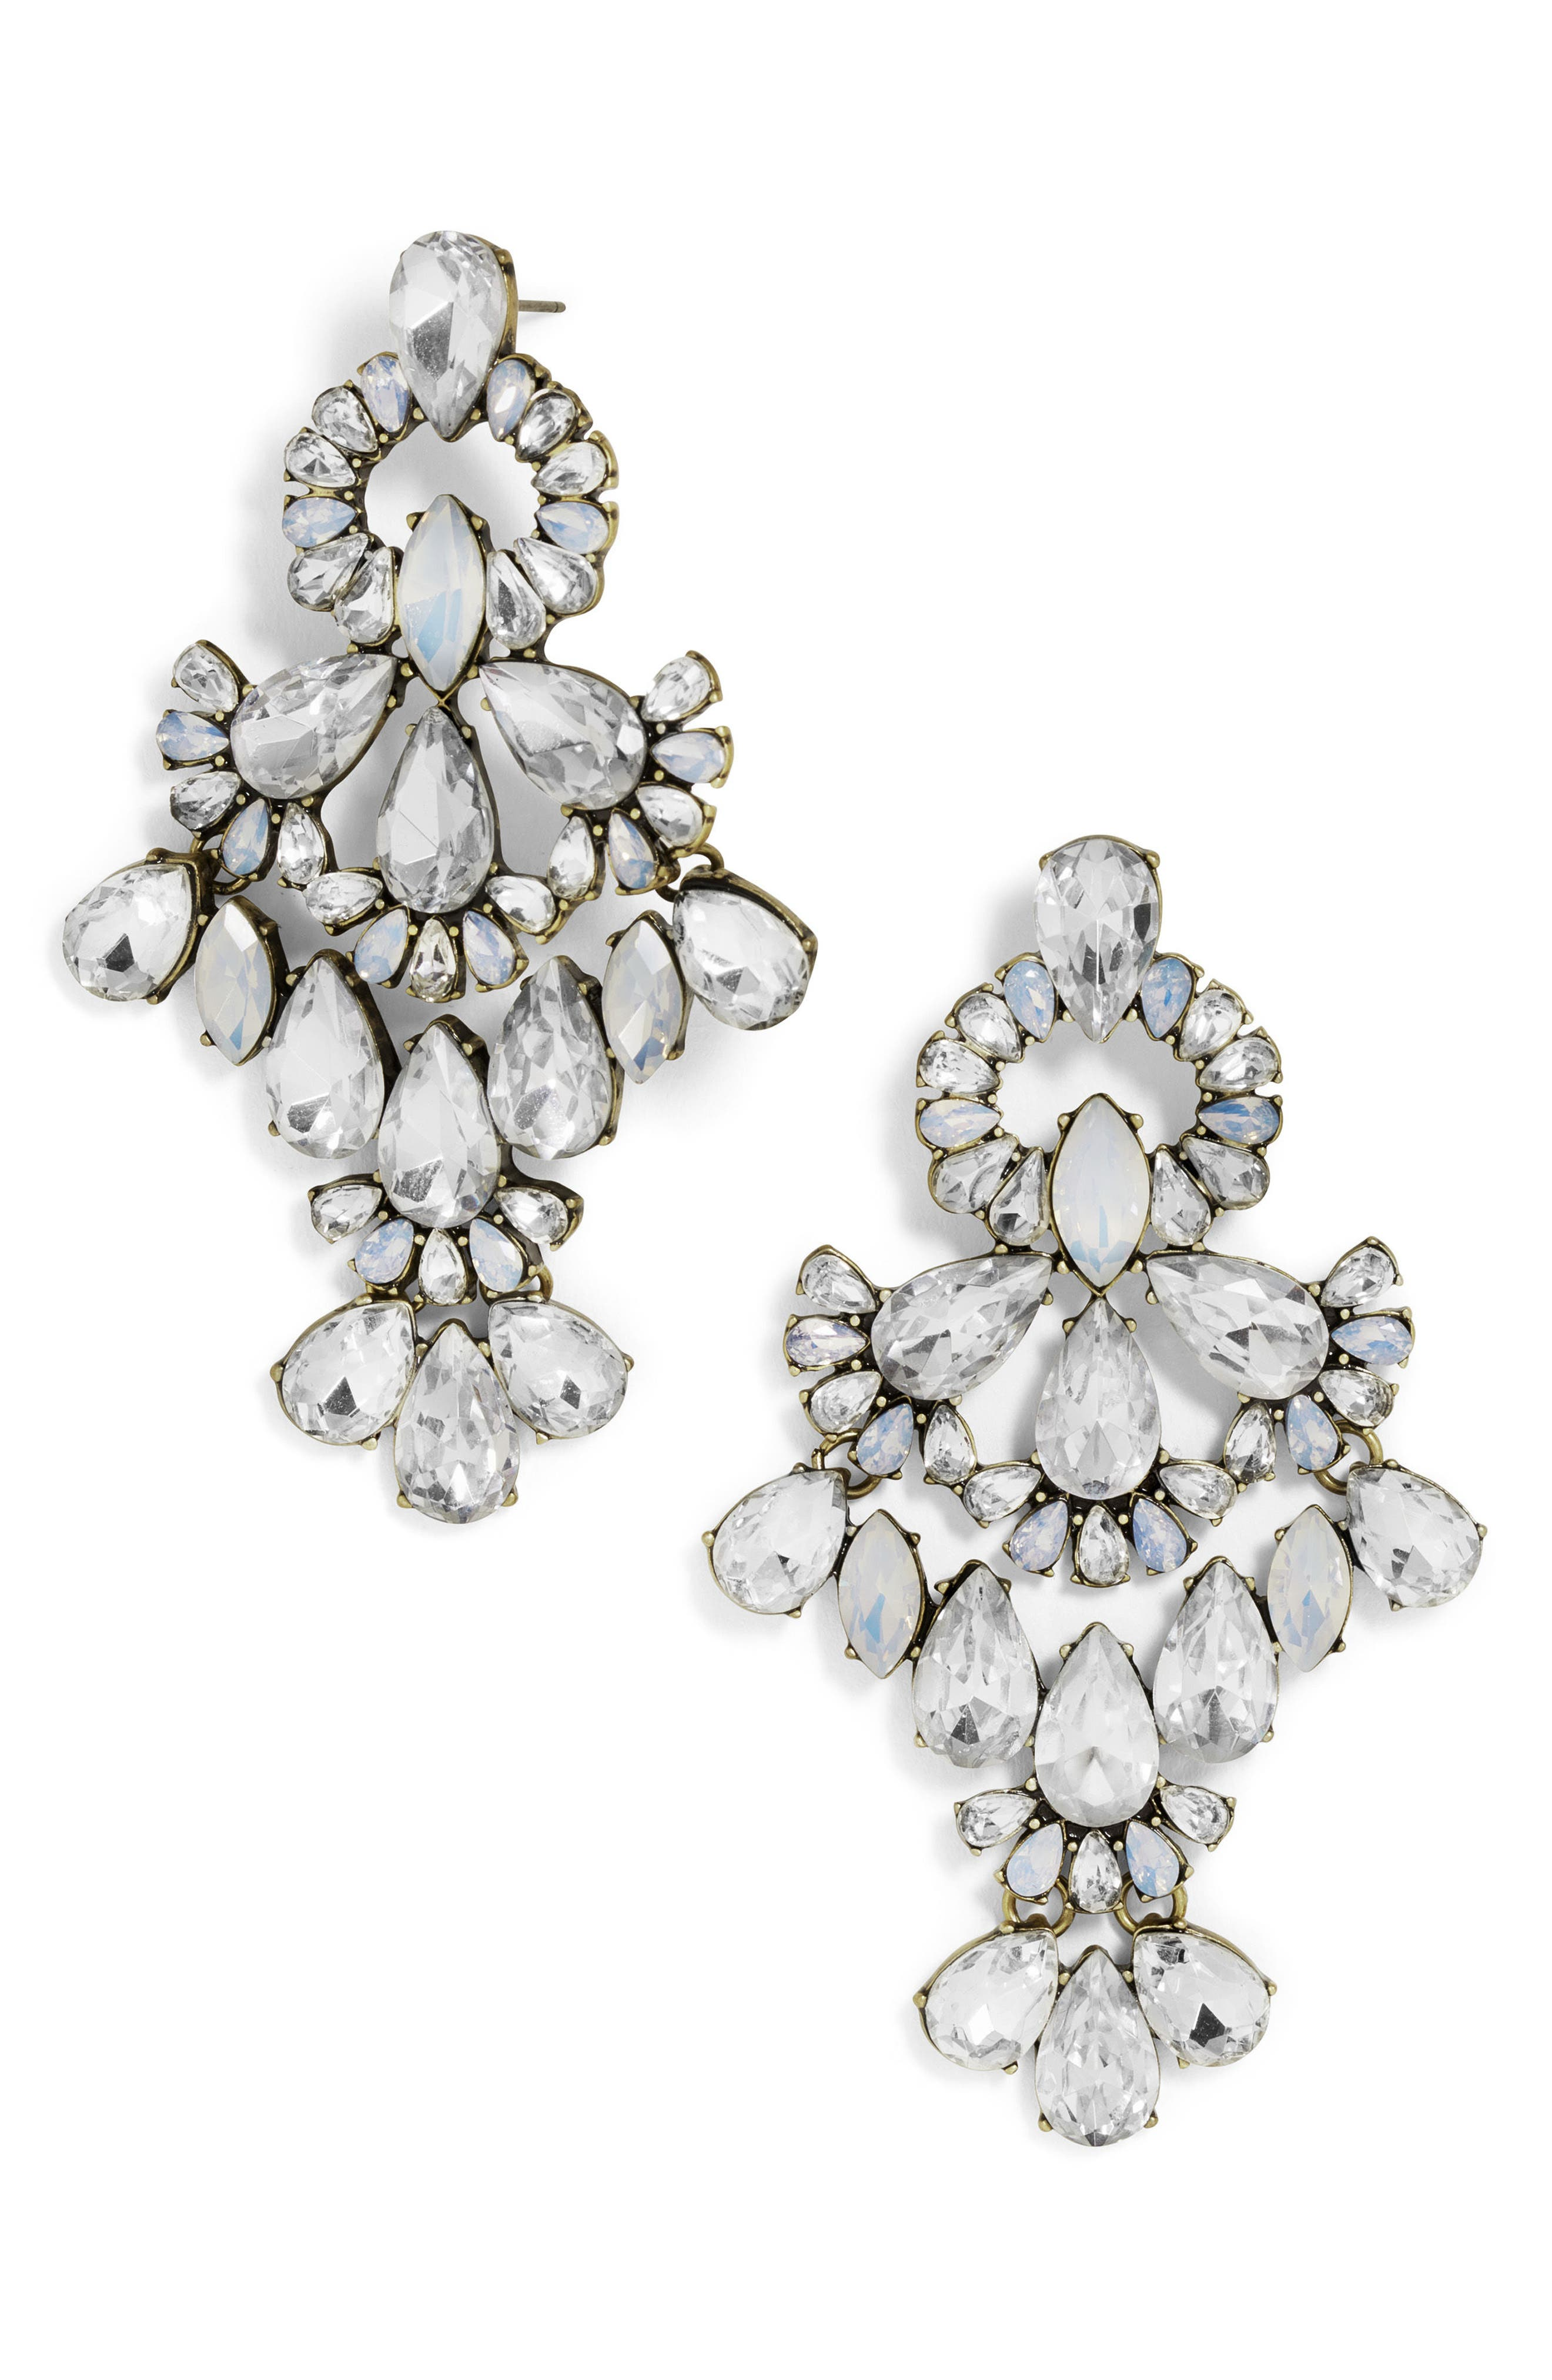 Symphony Crystal Statement Earrings,                             Main thumbnail 1, color,                             040